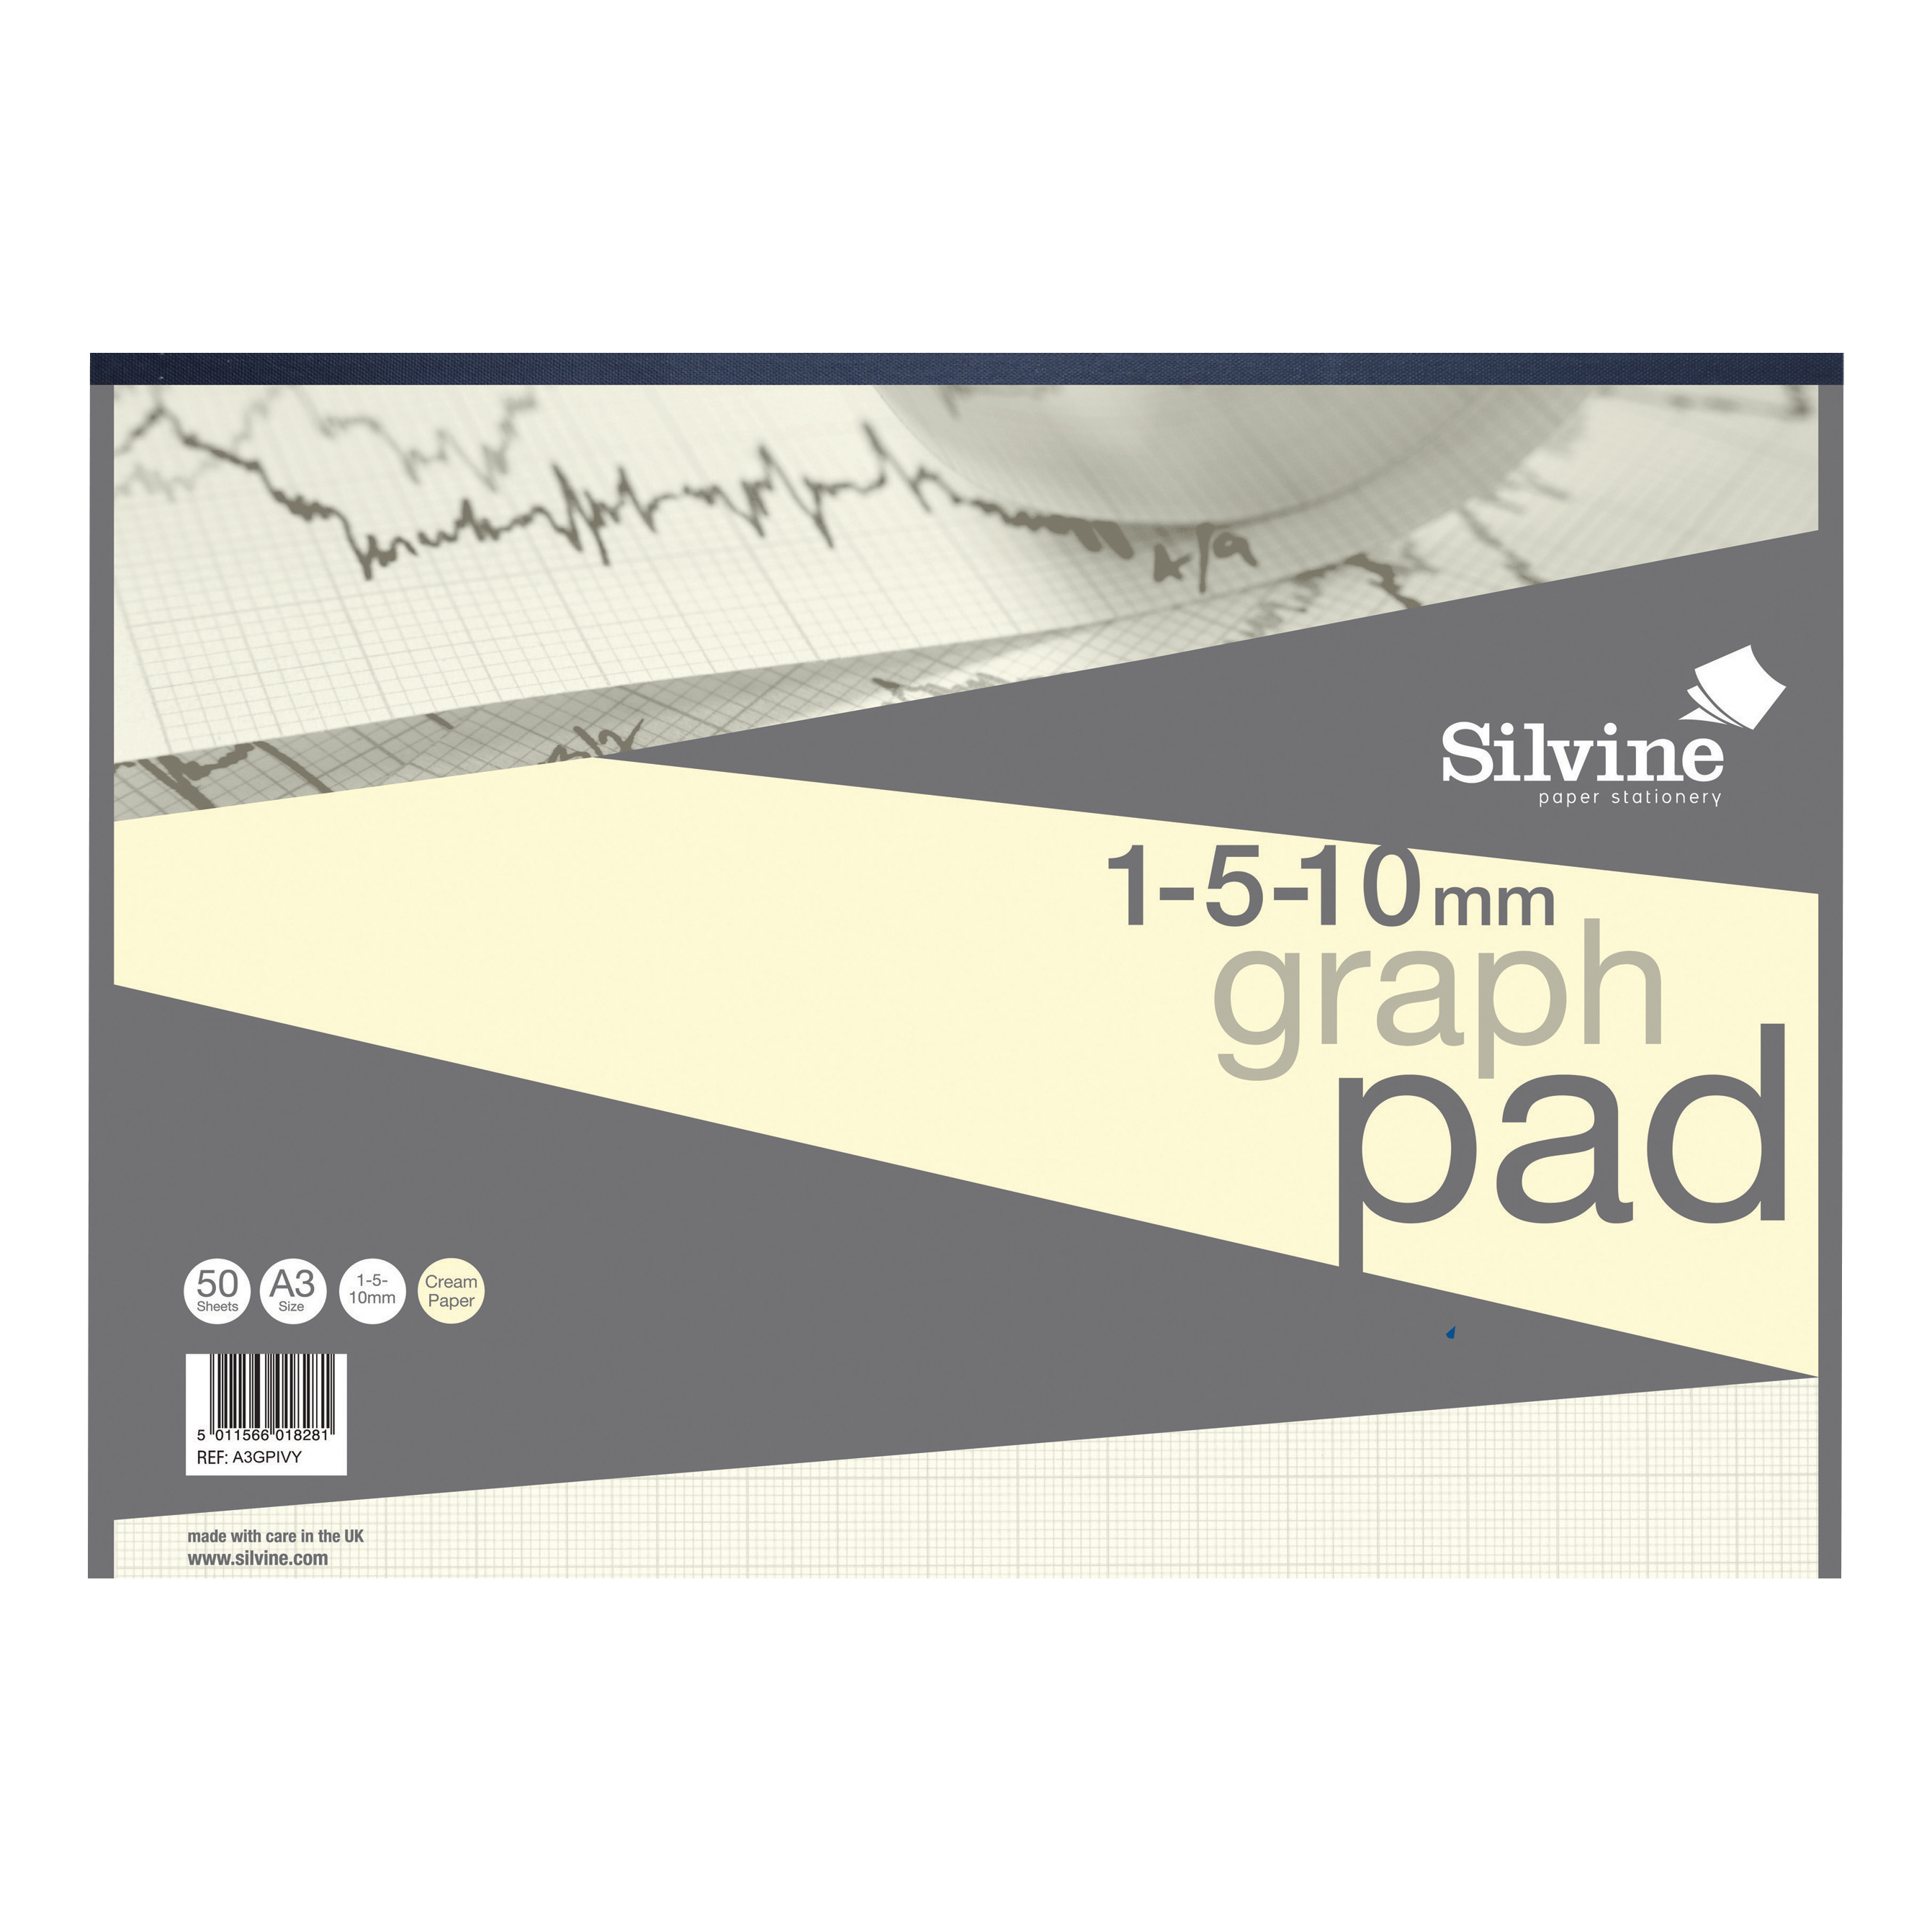 Silvine Designer Graph Pad 85gsm 1mm 5mm 10mm Grid 50 Sheets A3 Cream Wove Ref A3GPIVY COMPETITION